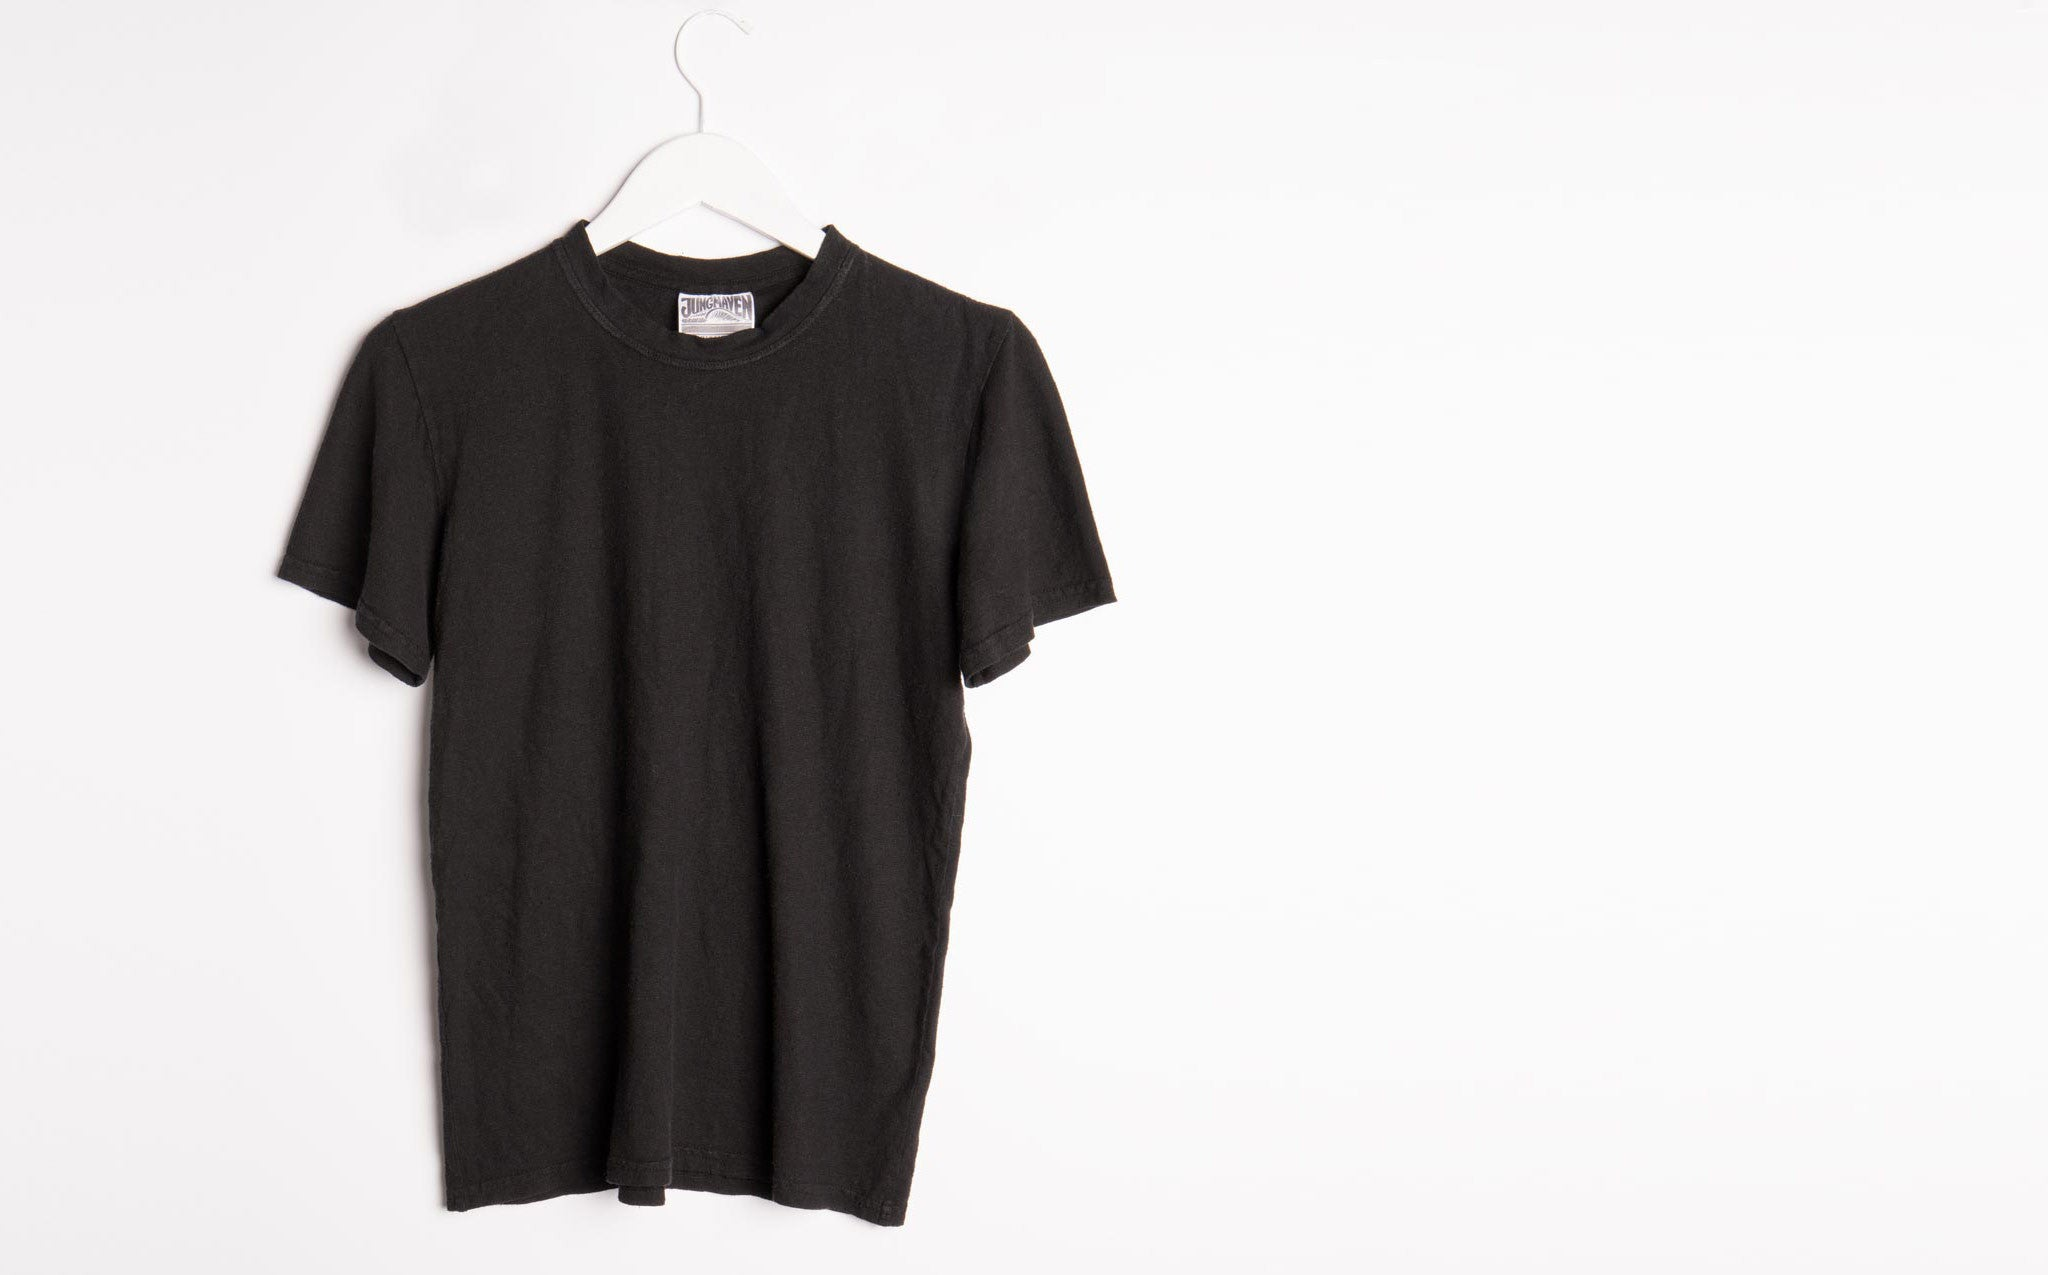 Jungmaven Black 7 Oz Baja Tee kindred black